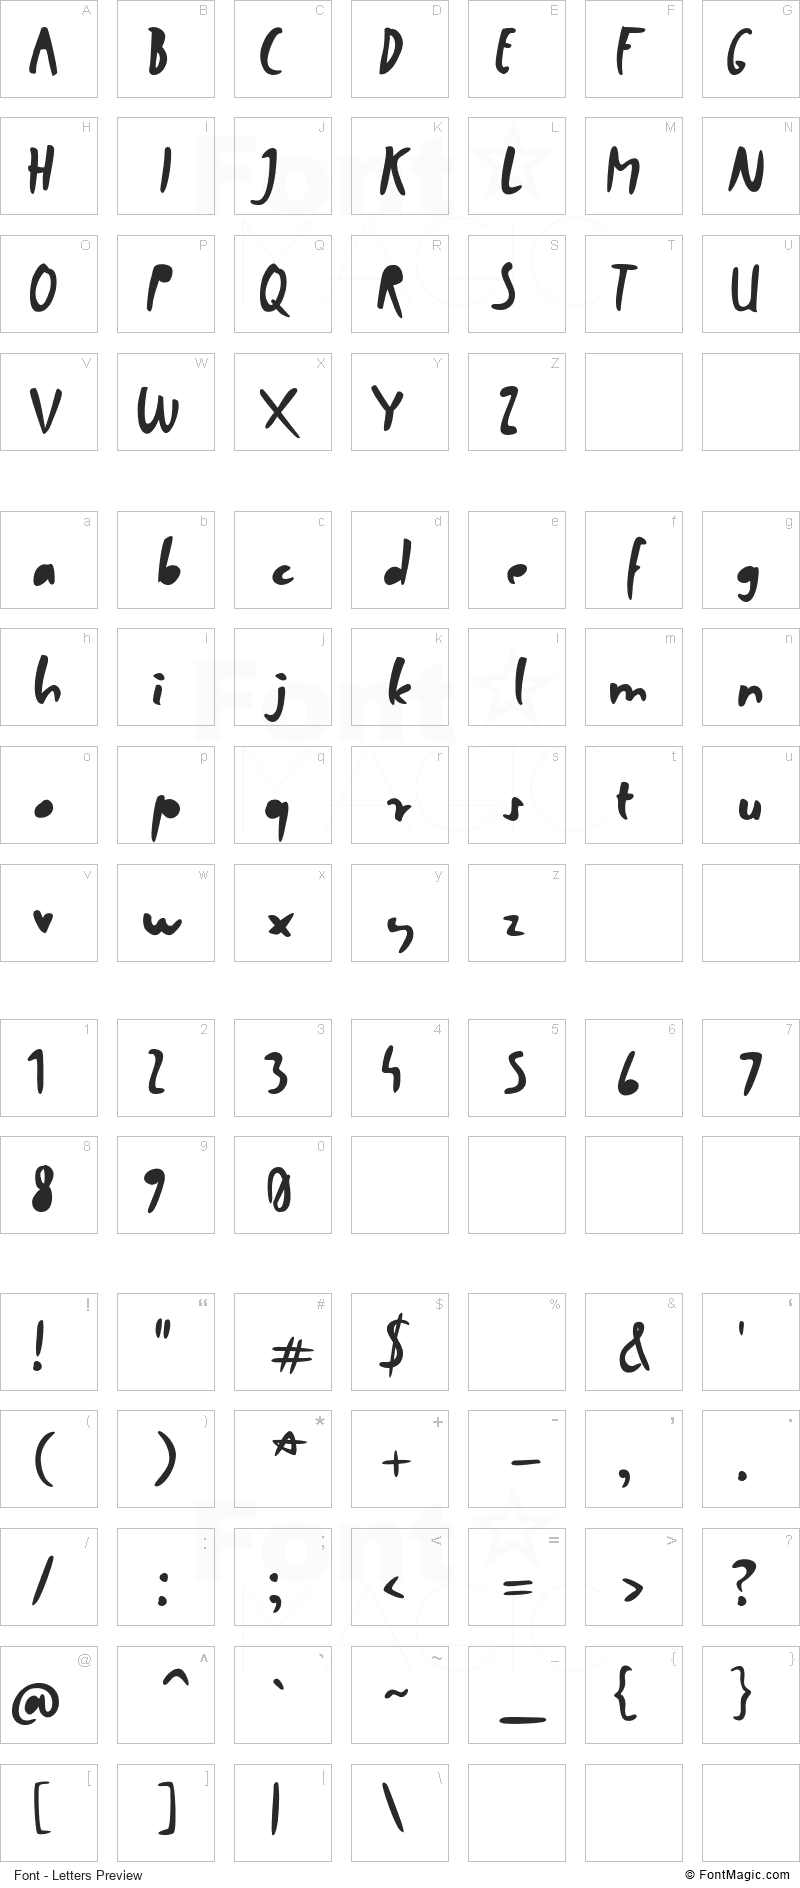 Factory Worker Font - All Latters Preview Chart